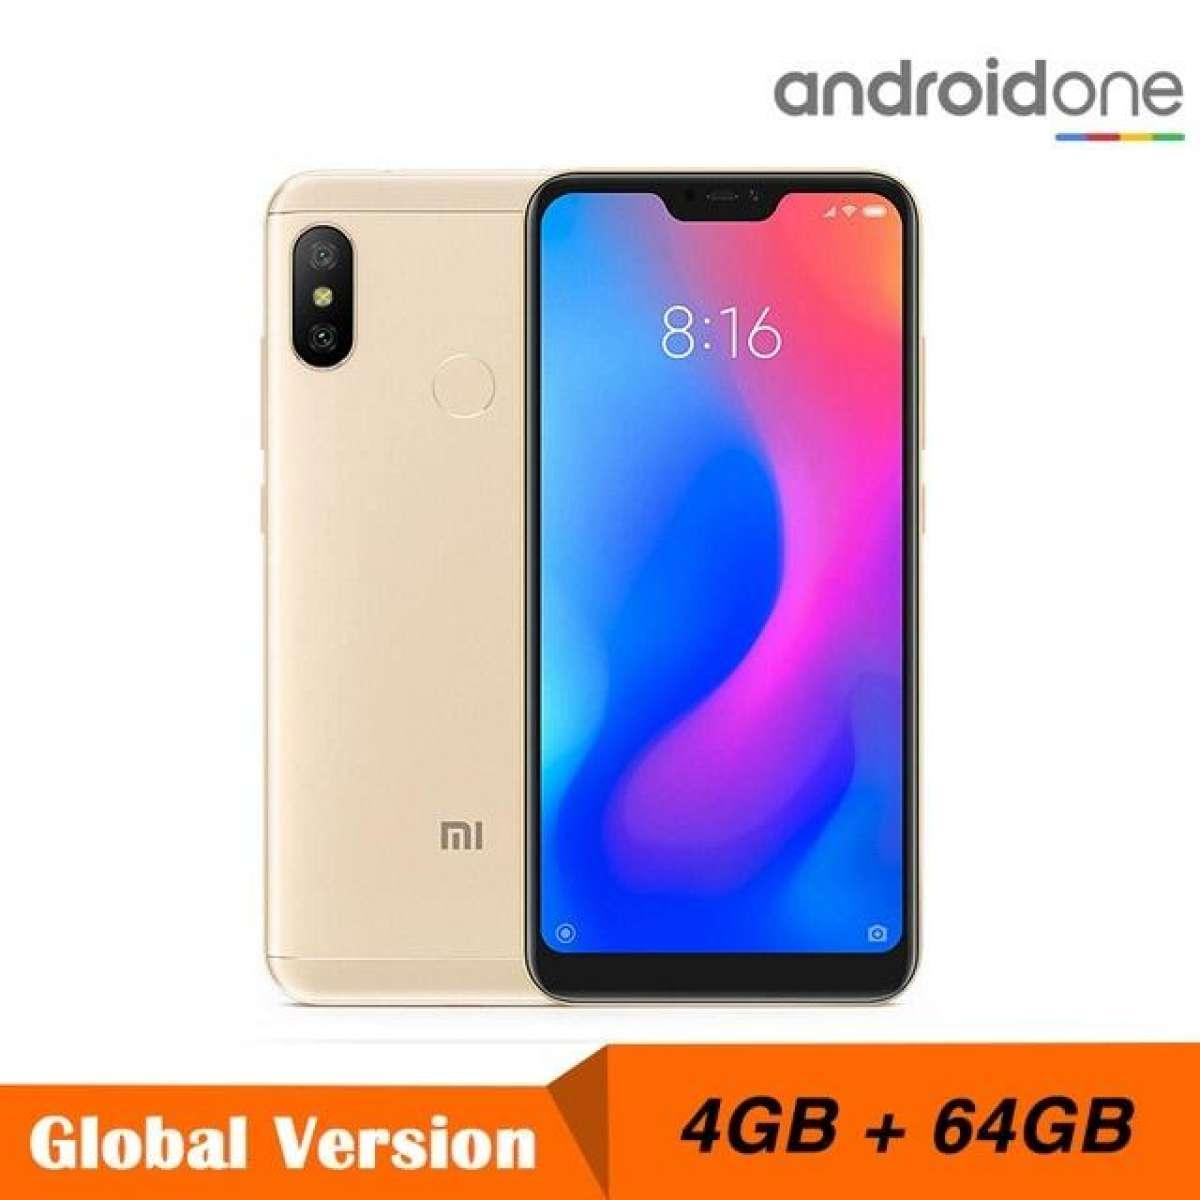 Jual Handphone Xiaomi Terbaru Redmi 5 Plus Ram 3gb Internal 32gb Blue Garansi Distributor